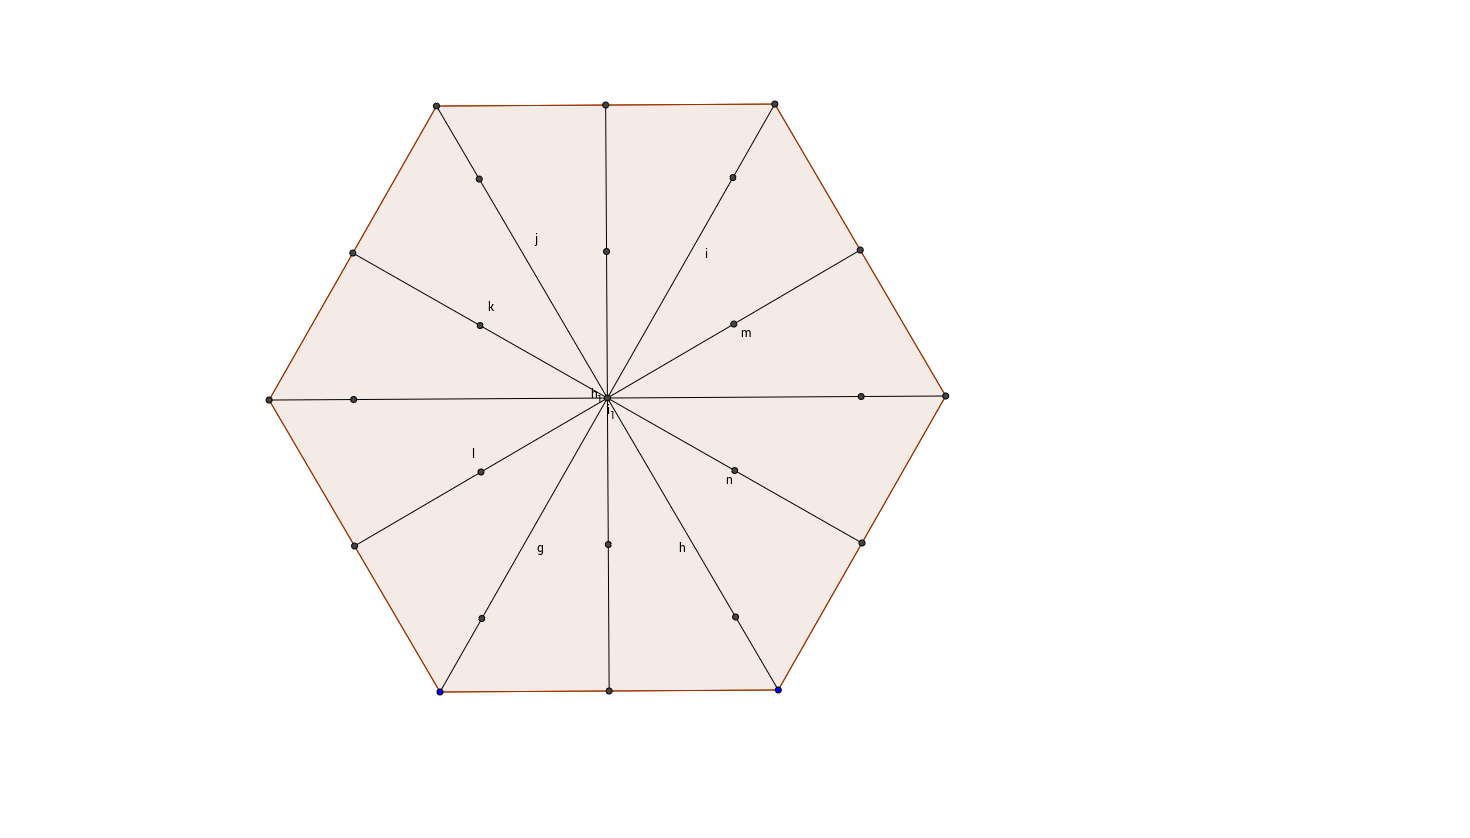 Step 2: Creating Midpoints and Line Segments